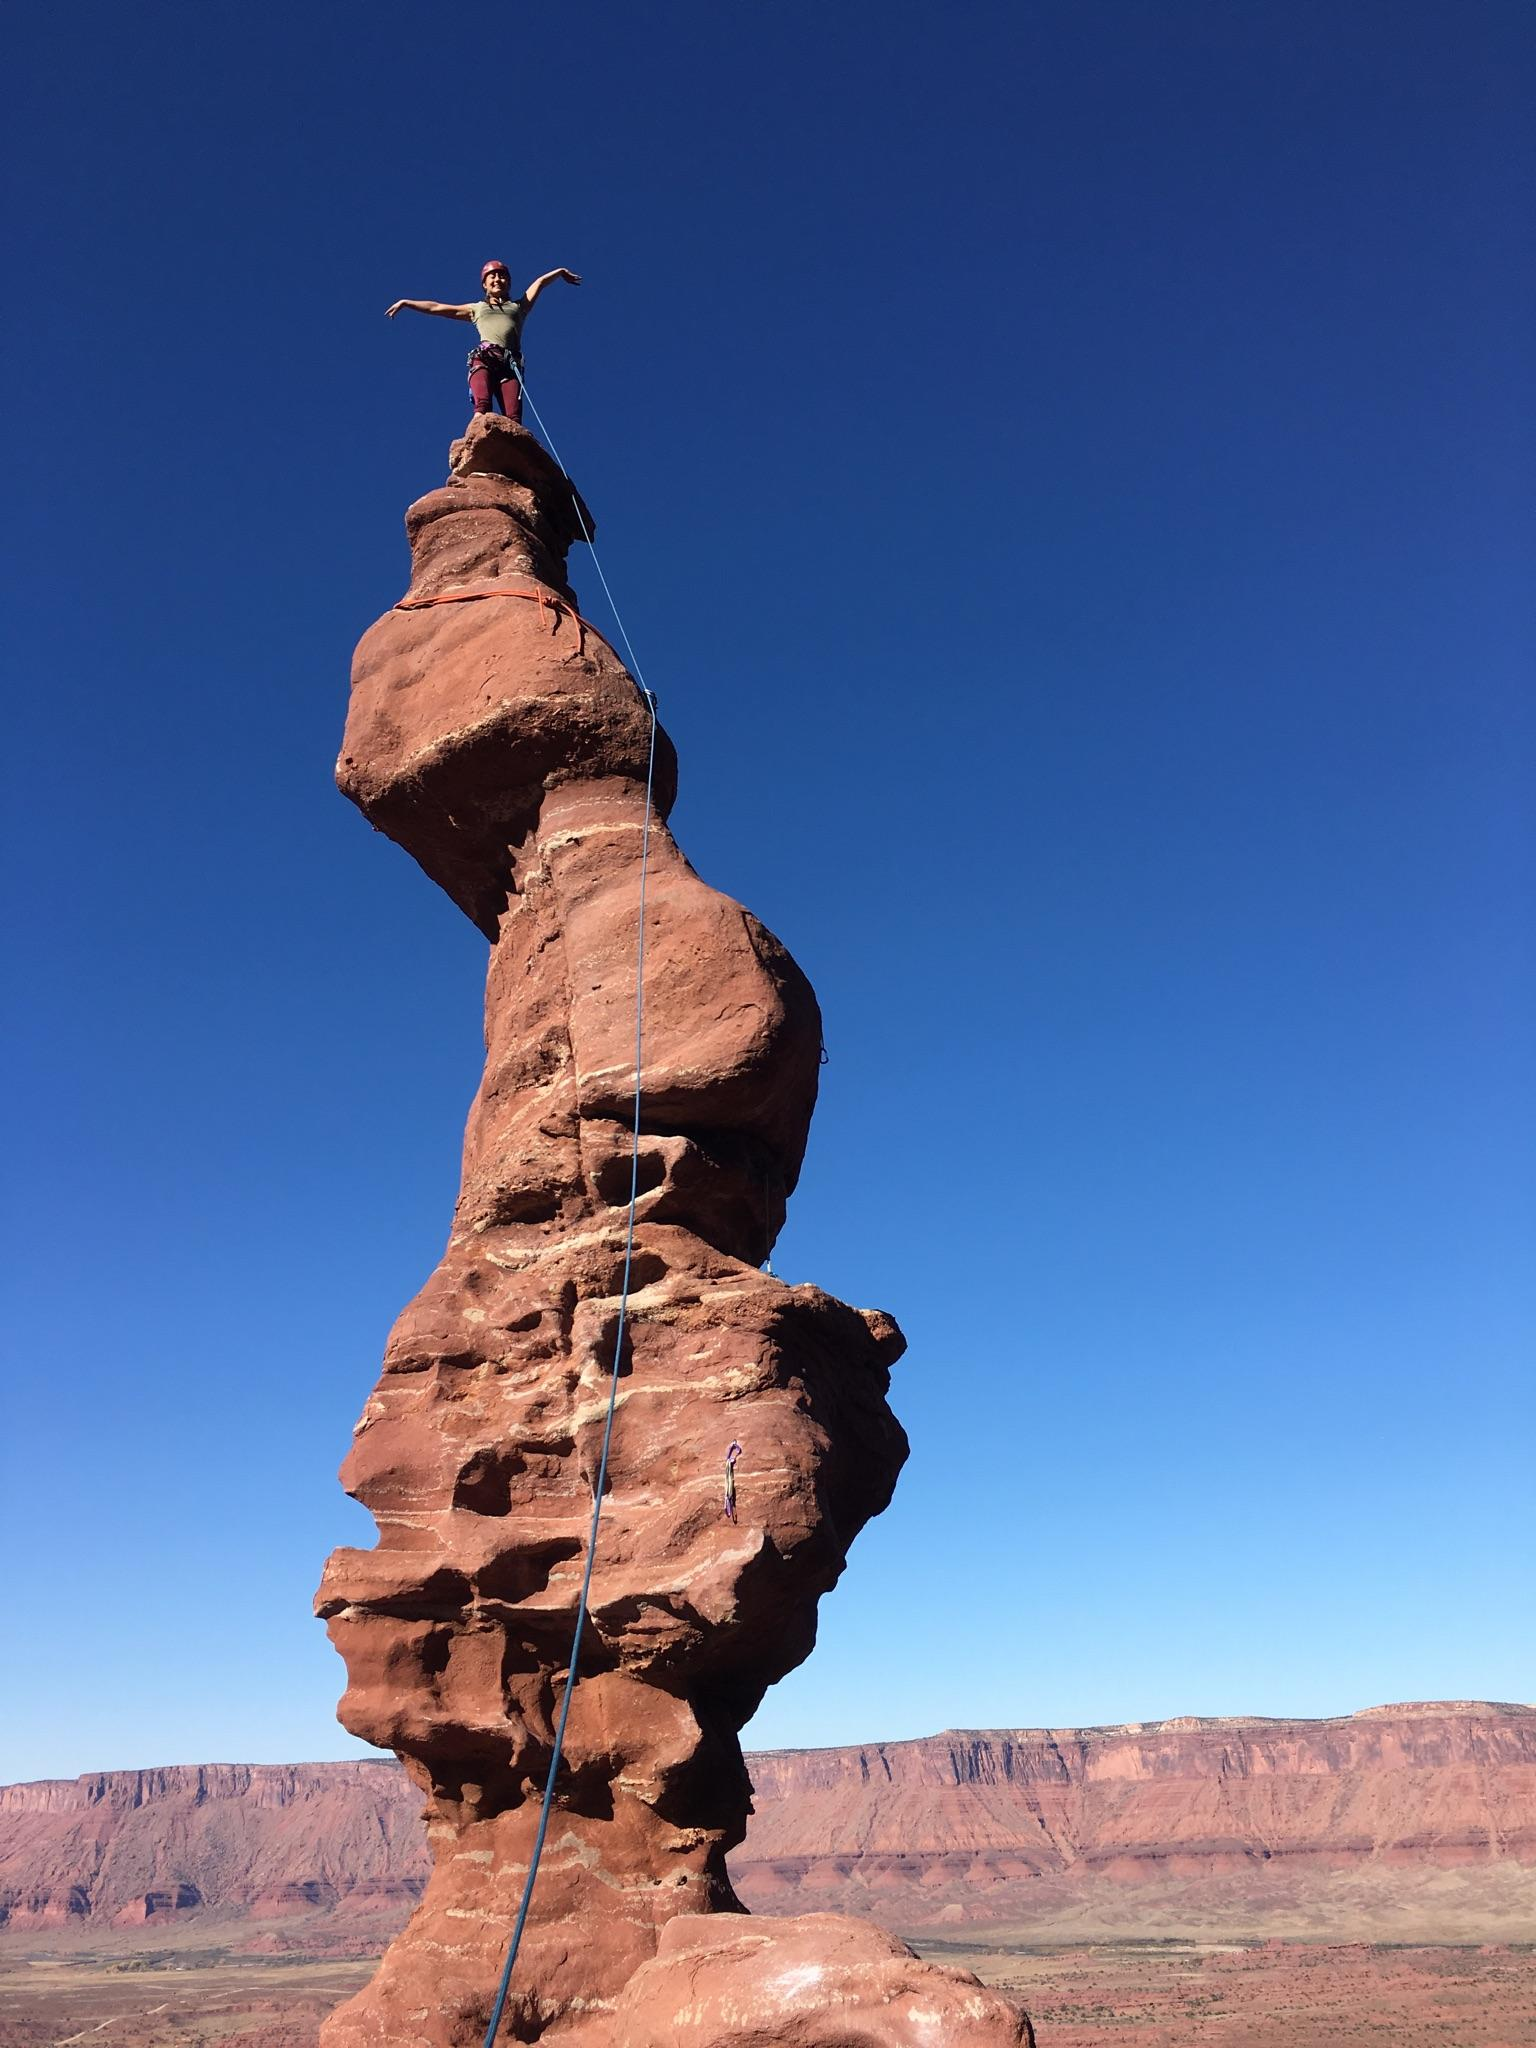 Gap Year Program - High Mountain Institute Gap: Climbing and Conservation in Patagonia and the American West  1